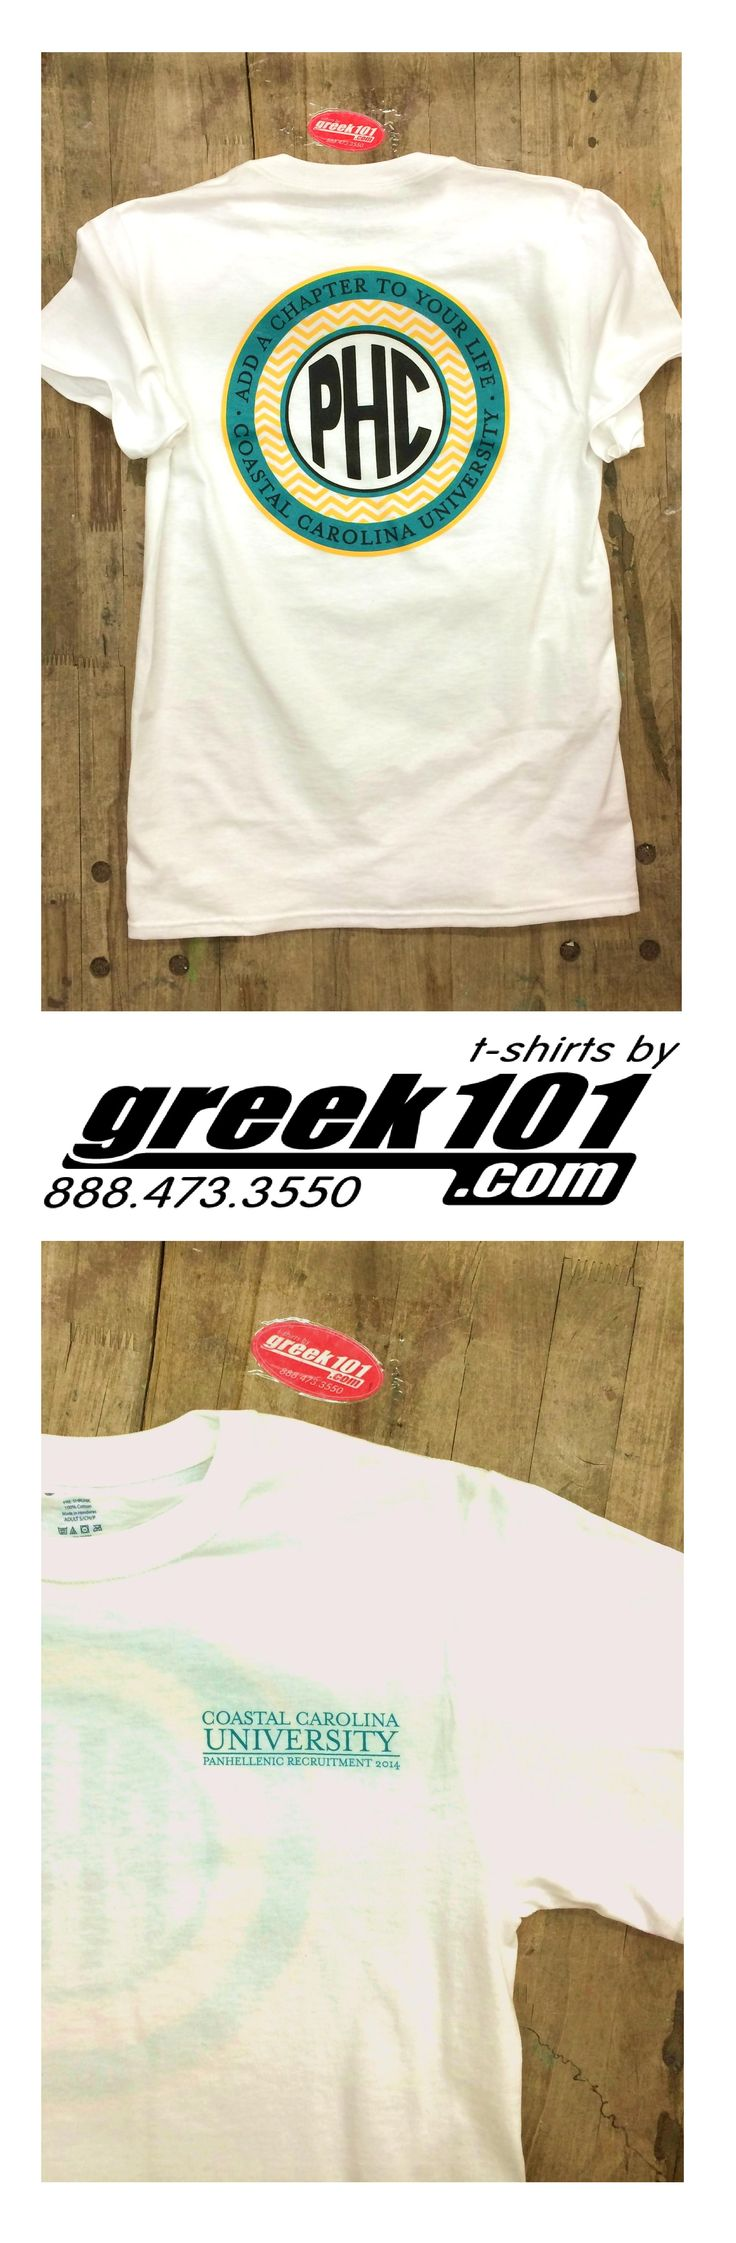 Panhellenic Sorority Recruitment 2014 PHC Circle design, Add a chapter to your story. in127235 visit: Greek101.com - email: inquiry@greek101.com - call: 888-473-3550